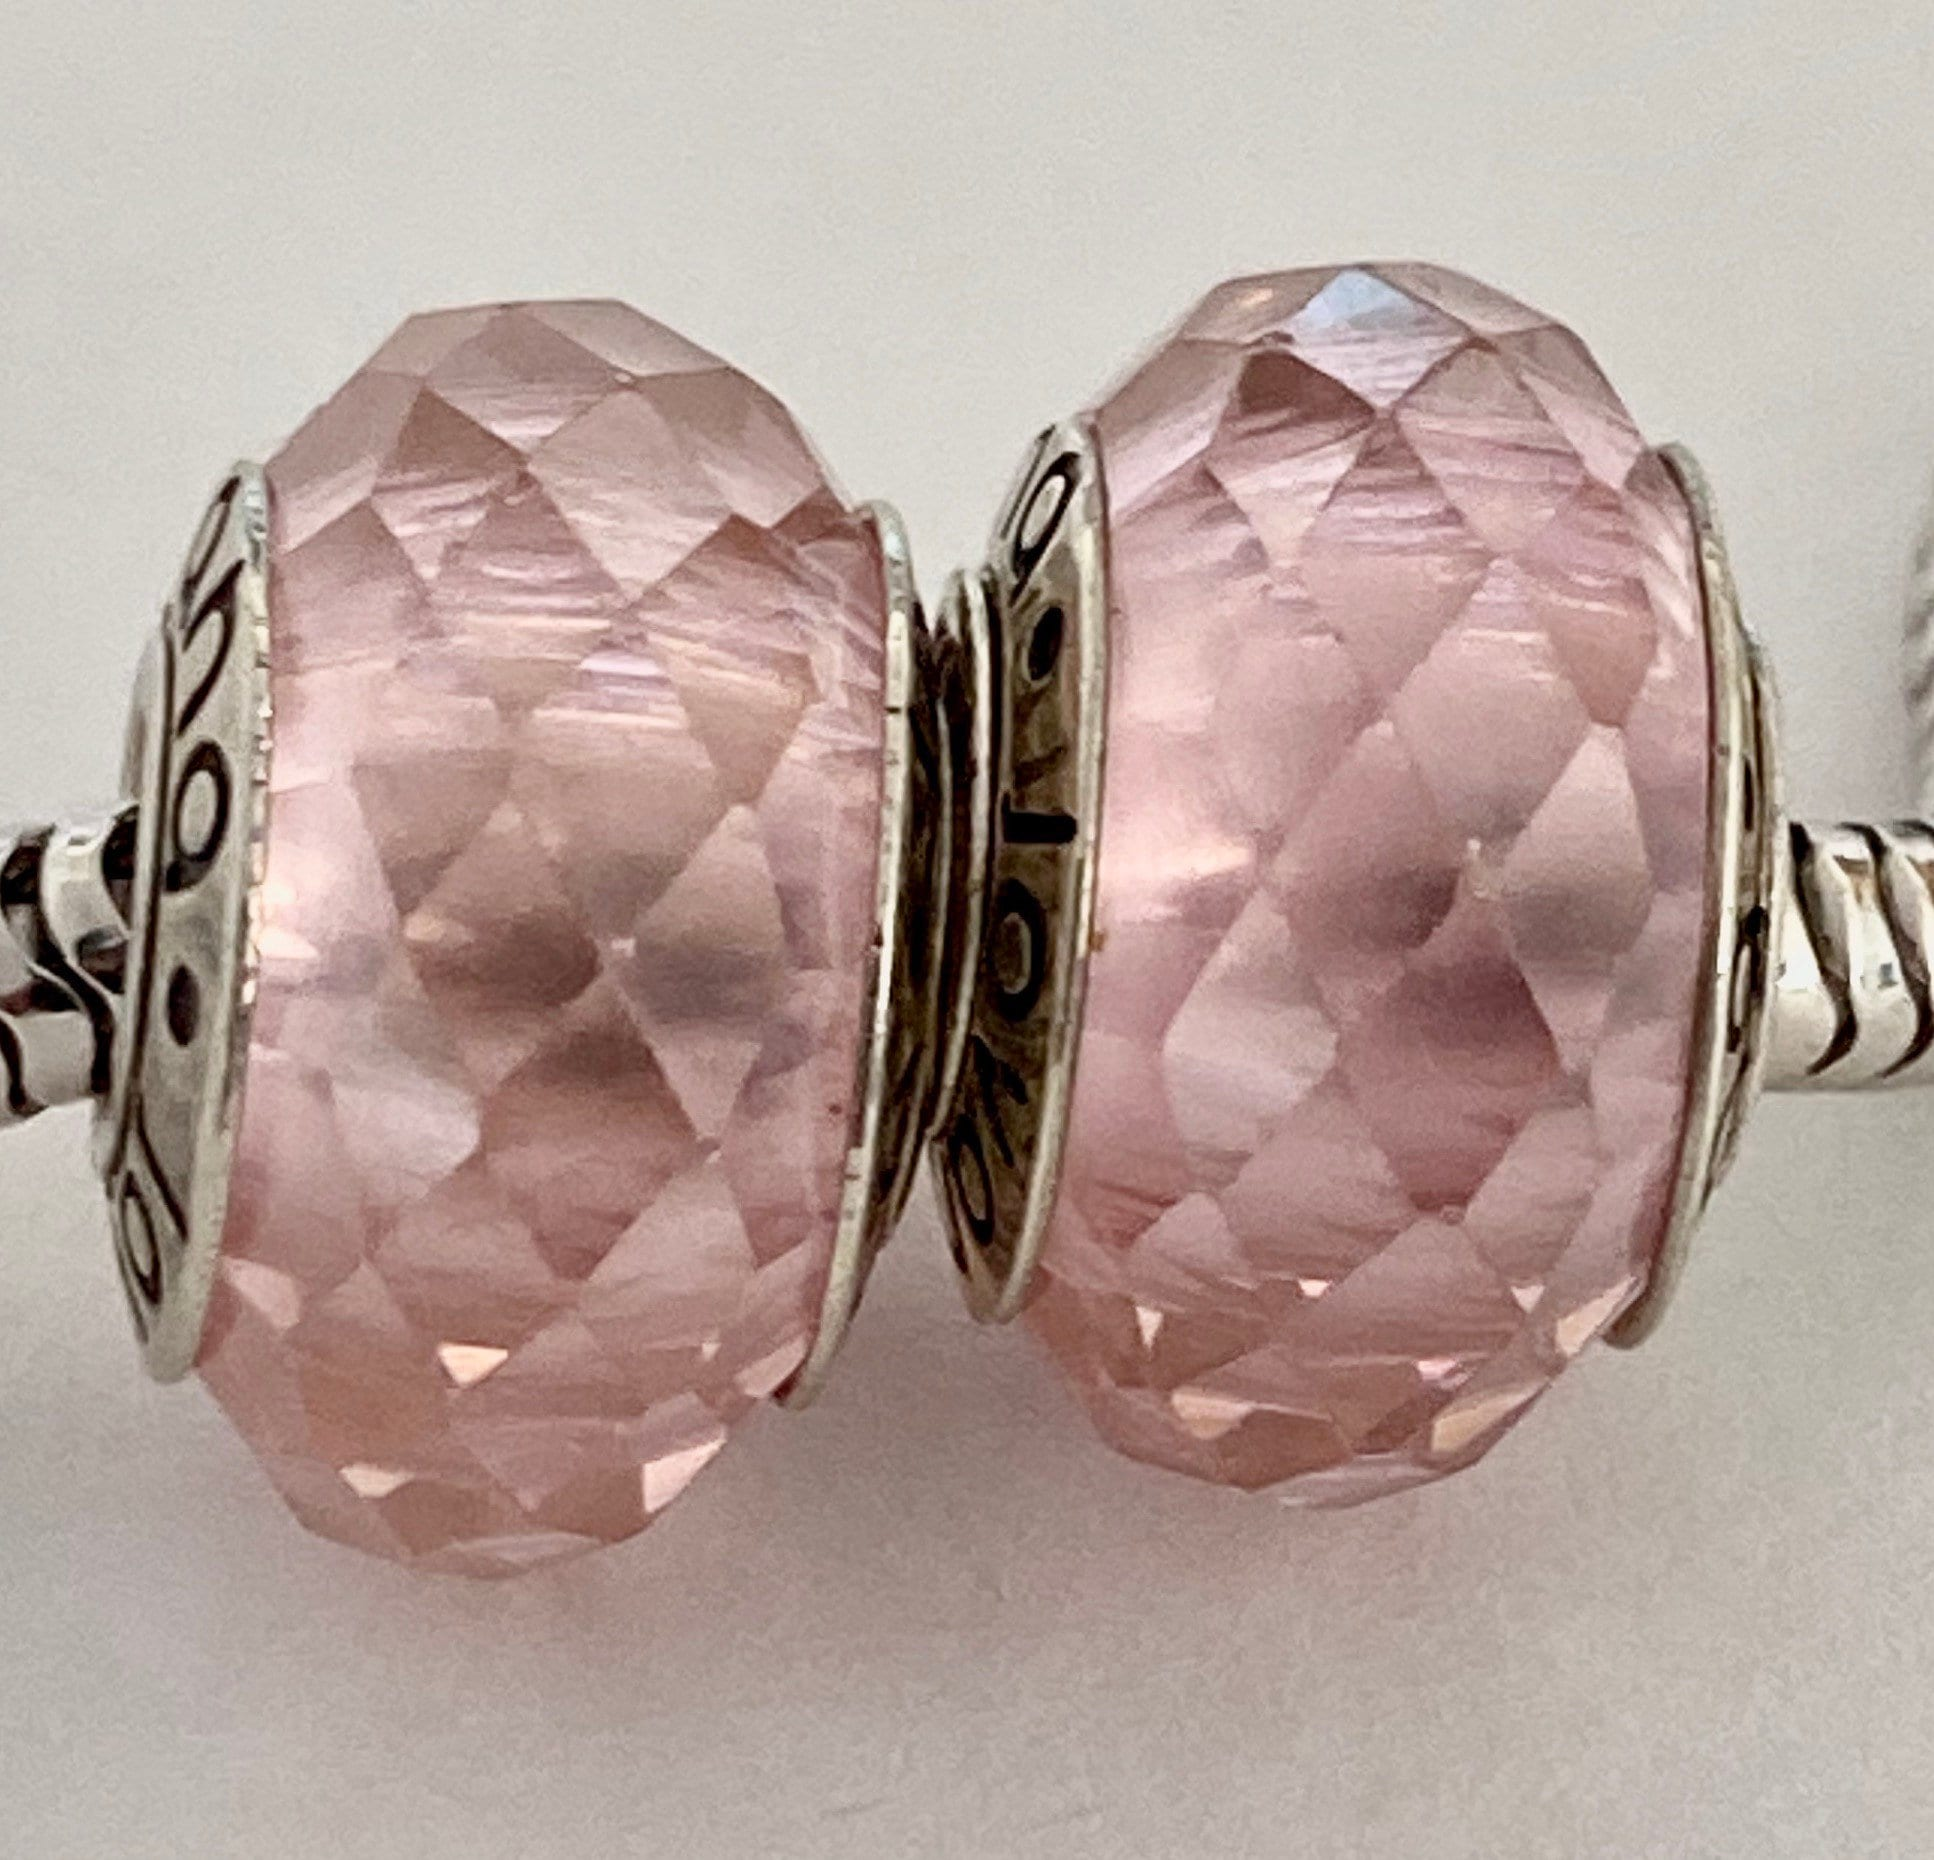 2 Charms Pink Faceted Charms 825 Cores Fit Pandora Bracelet Etsy